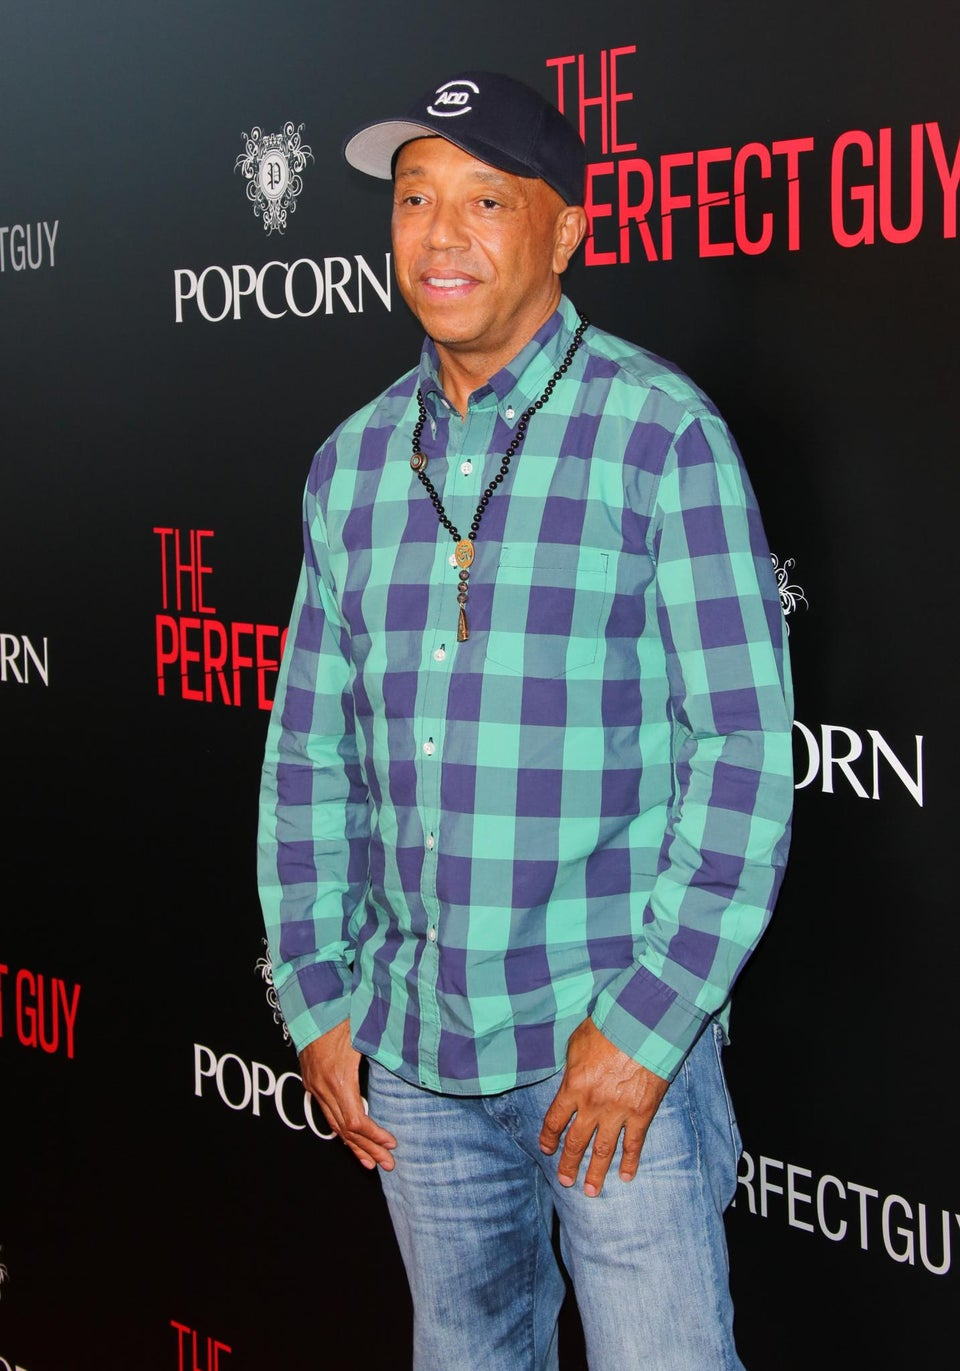 Russell Simmons Establishes Fund to Help Those Affected by RushCard Glitch